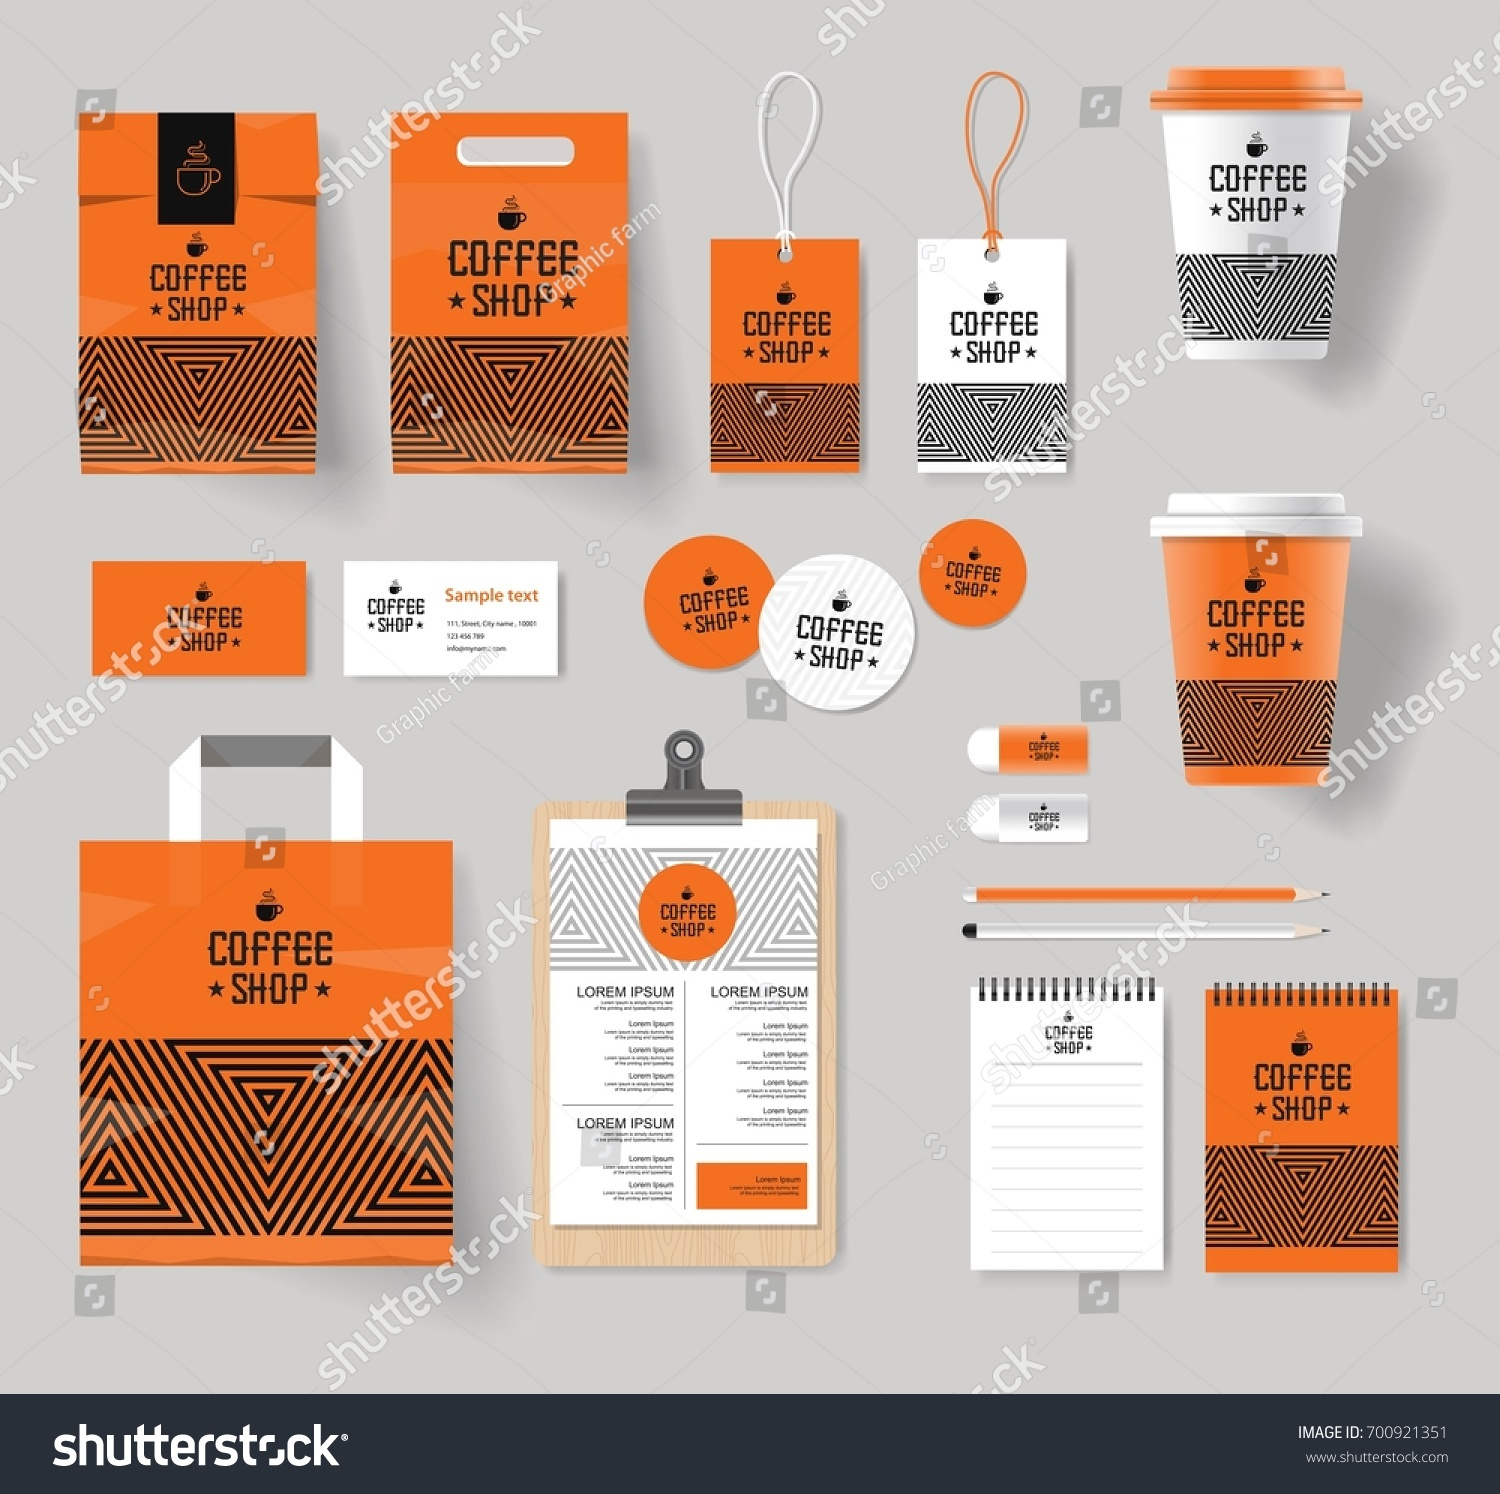 Corporate Branding Identity Mock Template Coffee Stock Vector ...